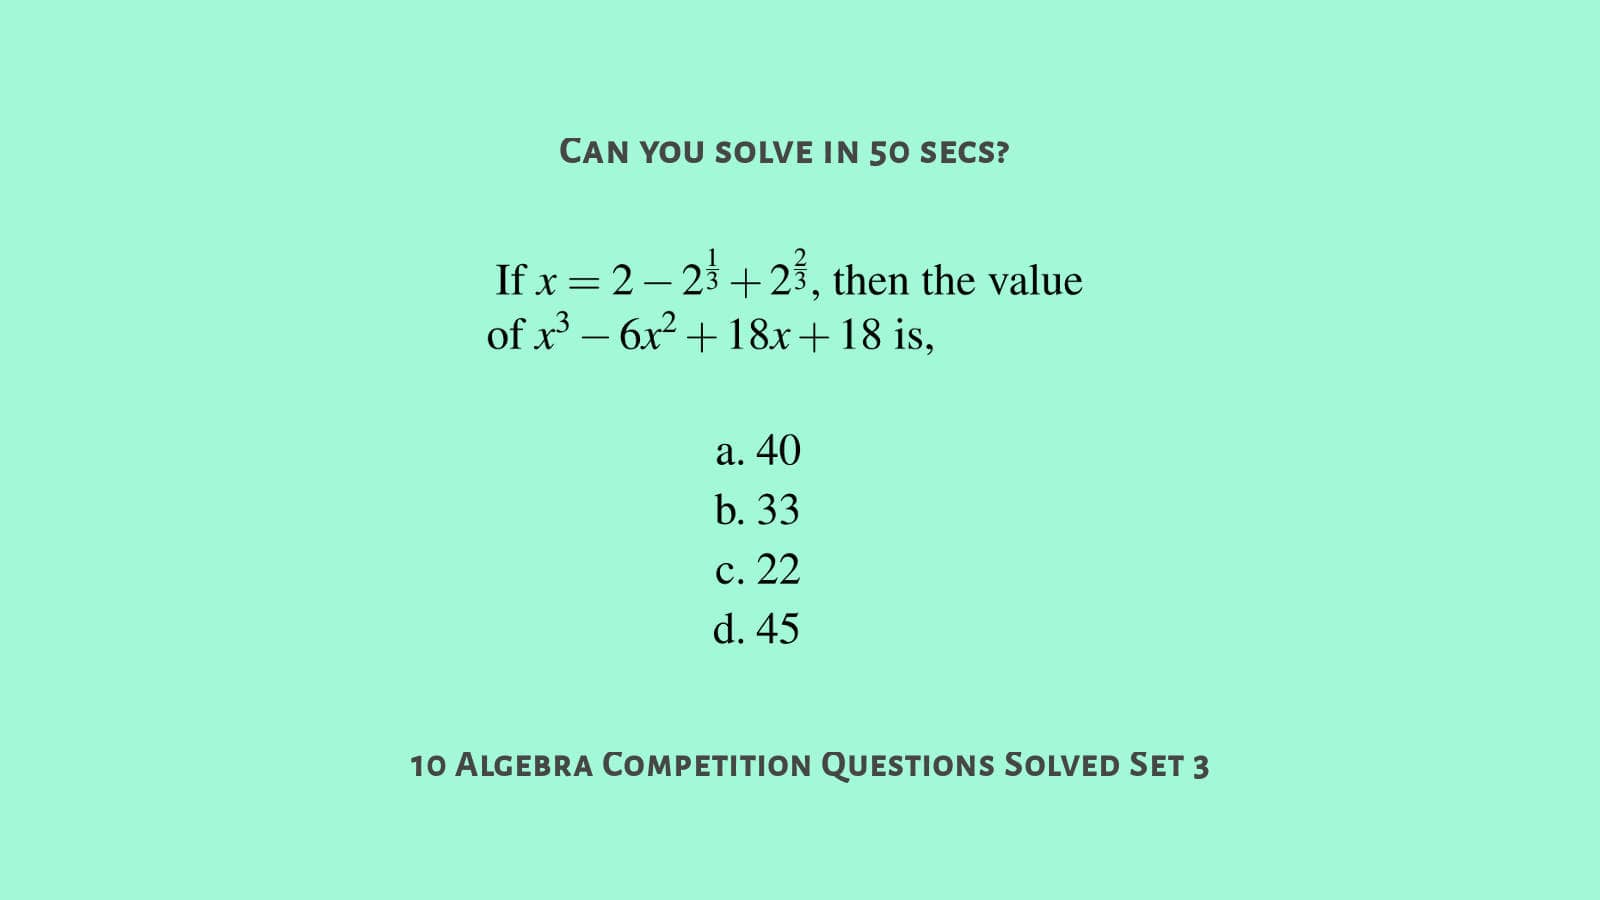 10 algebra questions with solutions set 3